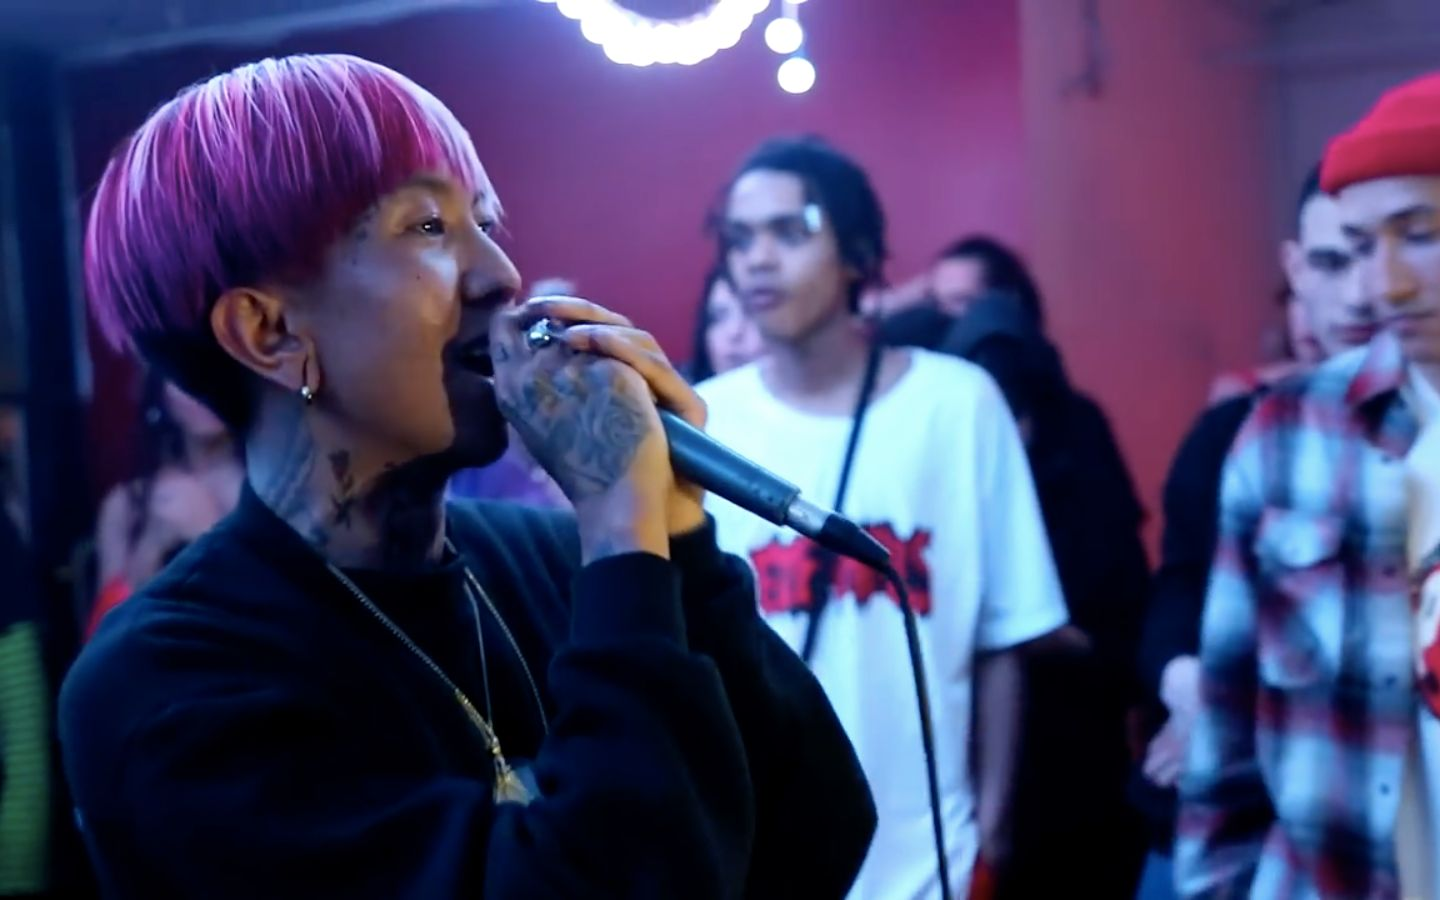 【Cold Hart】Live in LA, 4/26/18 HamOnEverything show